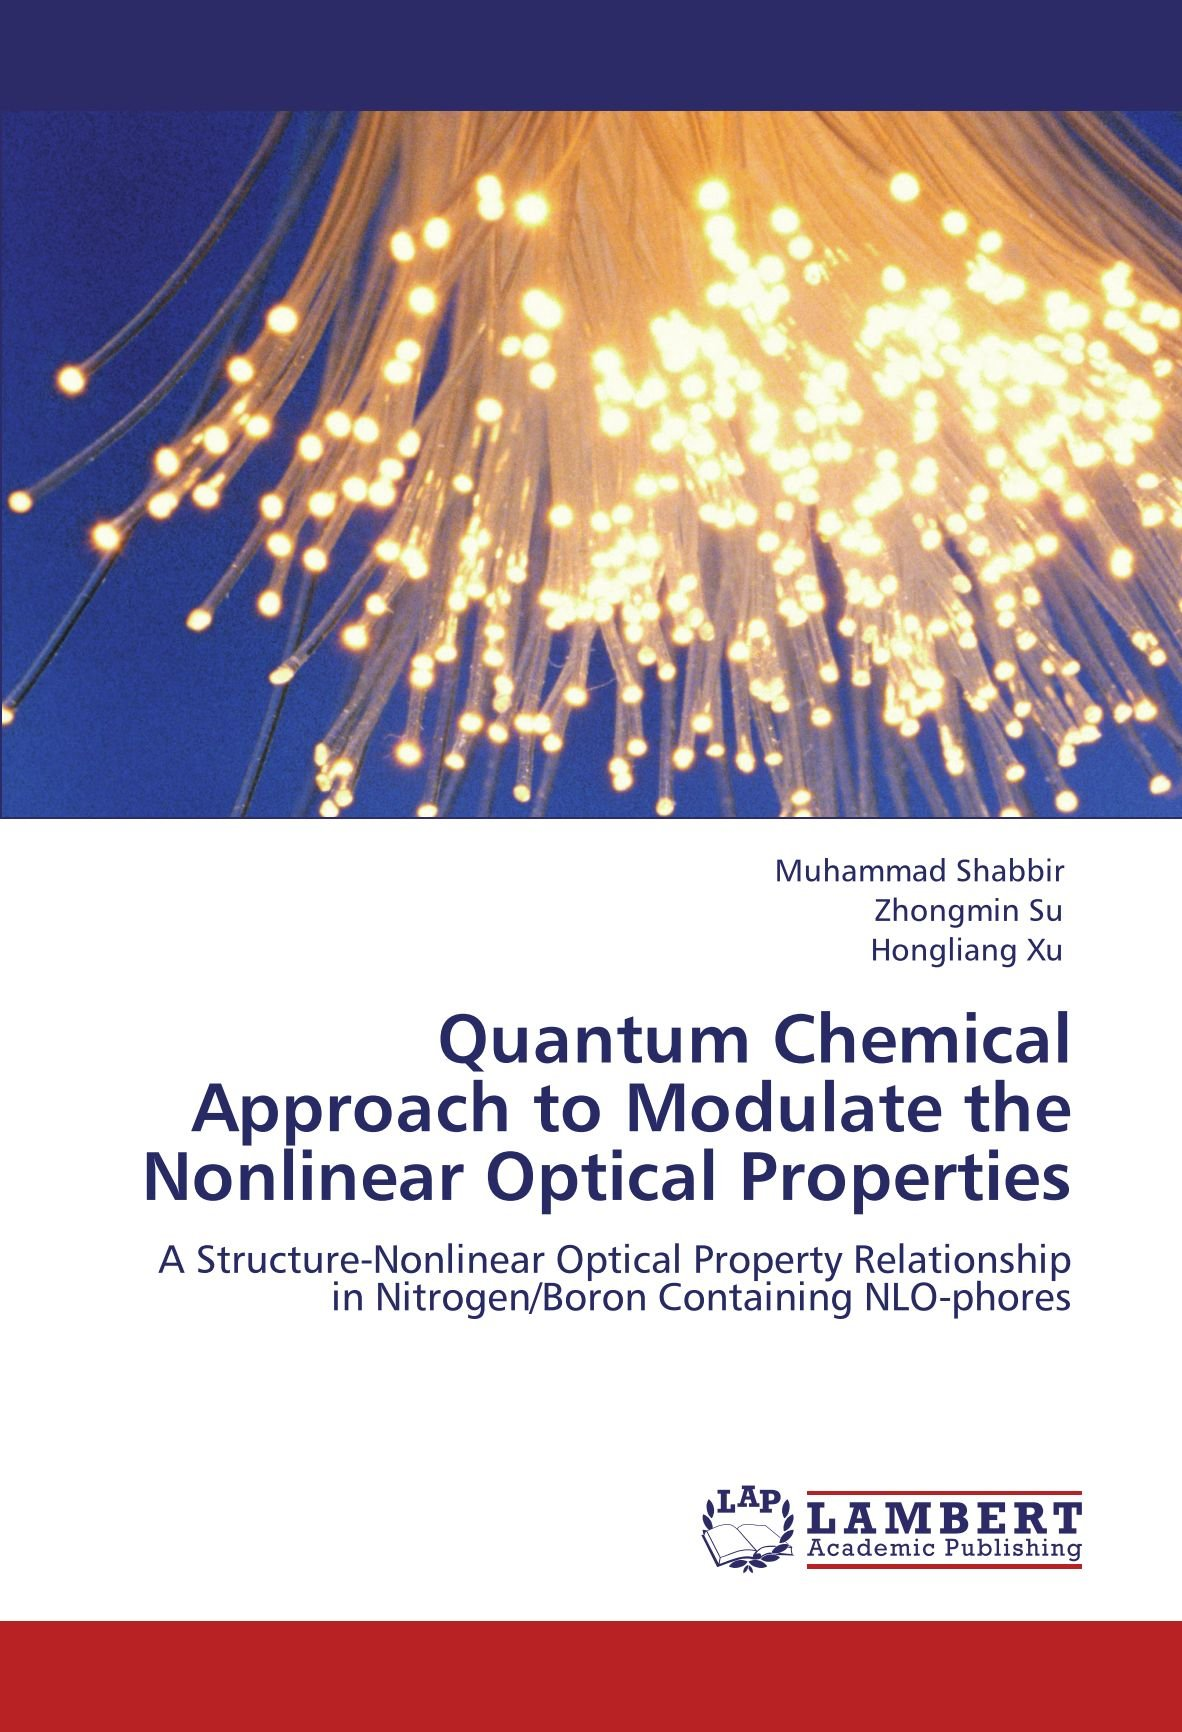 Quantum Chemical Approach to Modulate the Nonlinear Optical Properties: A Structure-Nonlinear Optical Property Relationship in Nitrogen/Boron Containing NLO-phores PDF